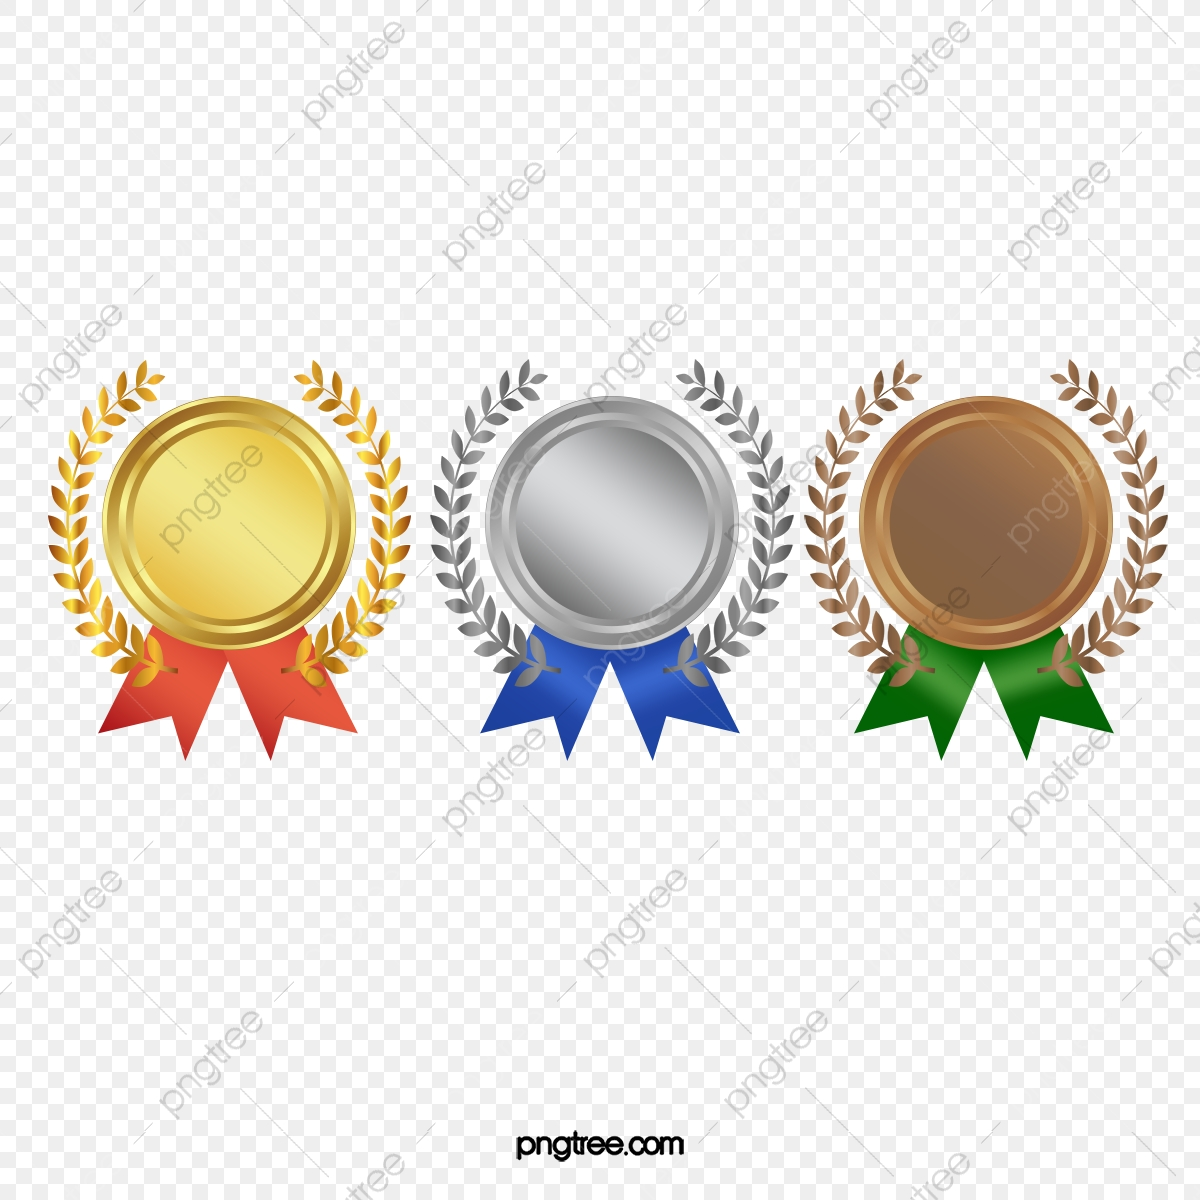 hight resolution of  olympic gold medal png image and clipart copyright complaint